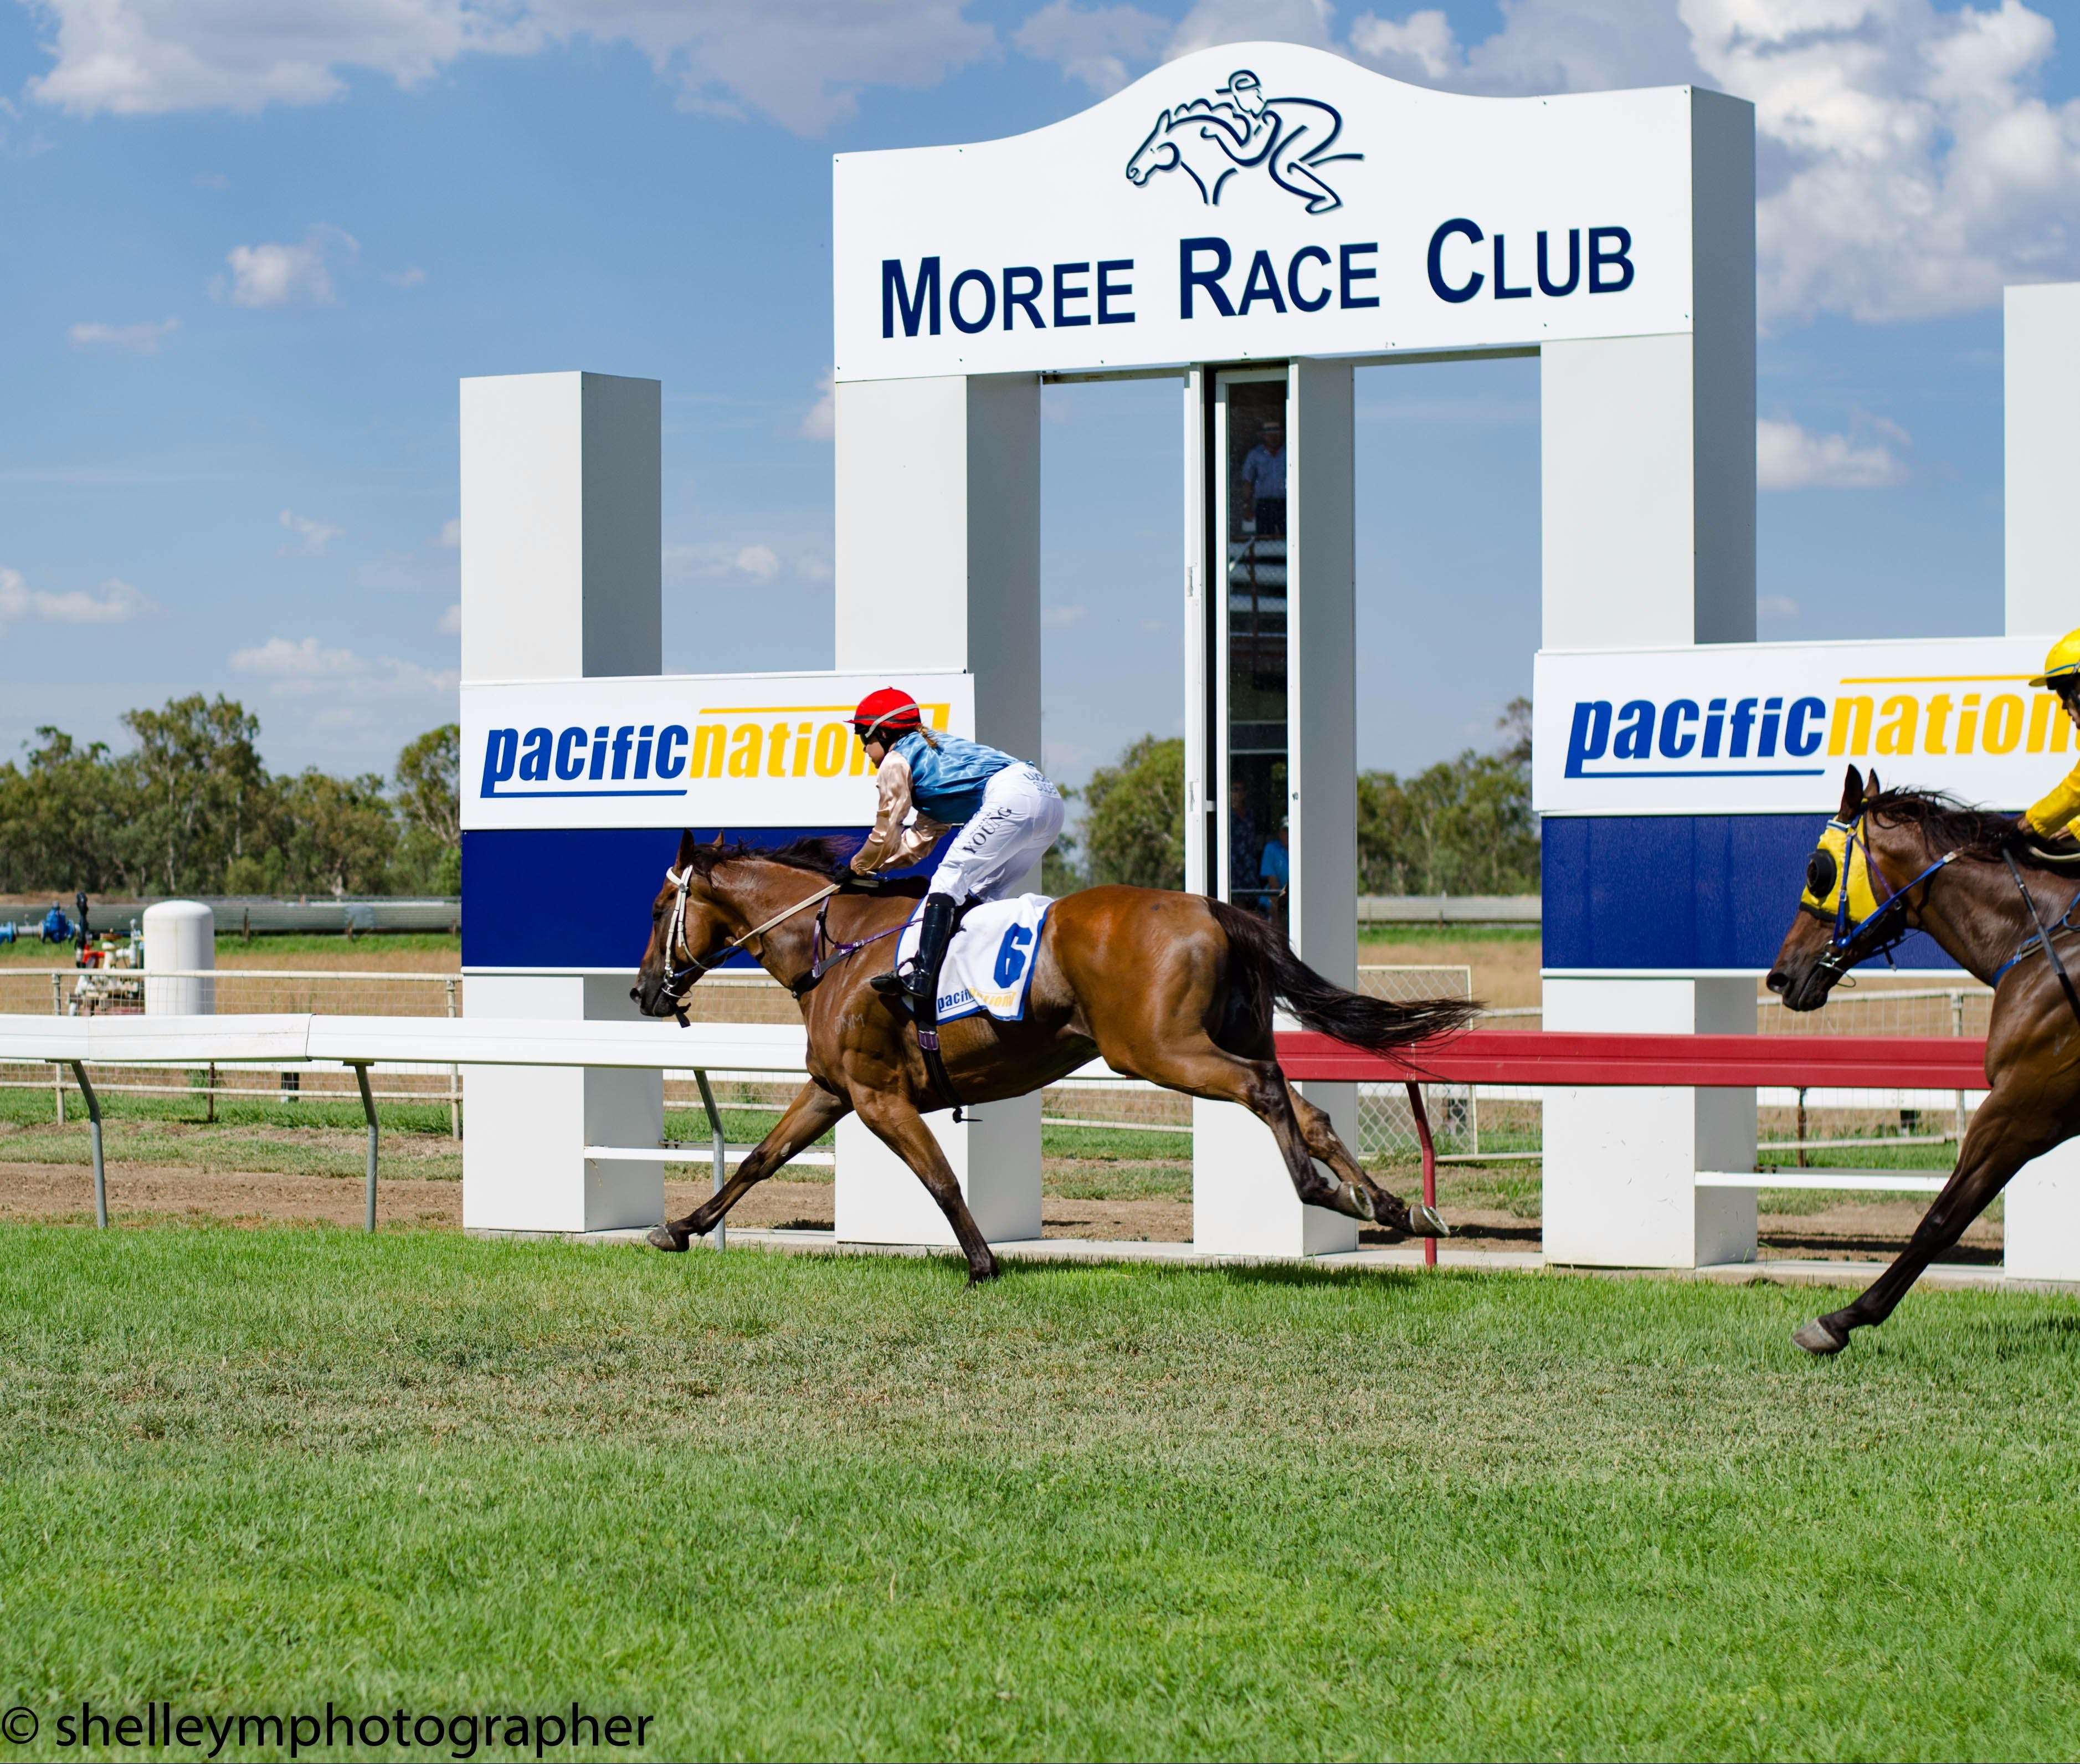 Moree Race Club TAB Race Day - Broome Tourism